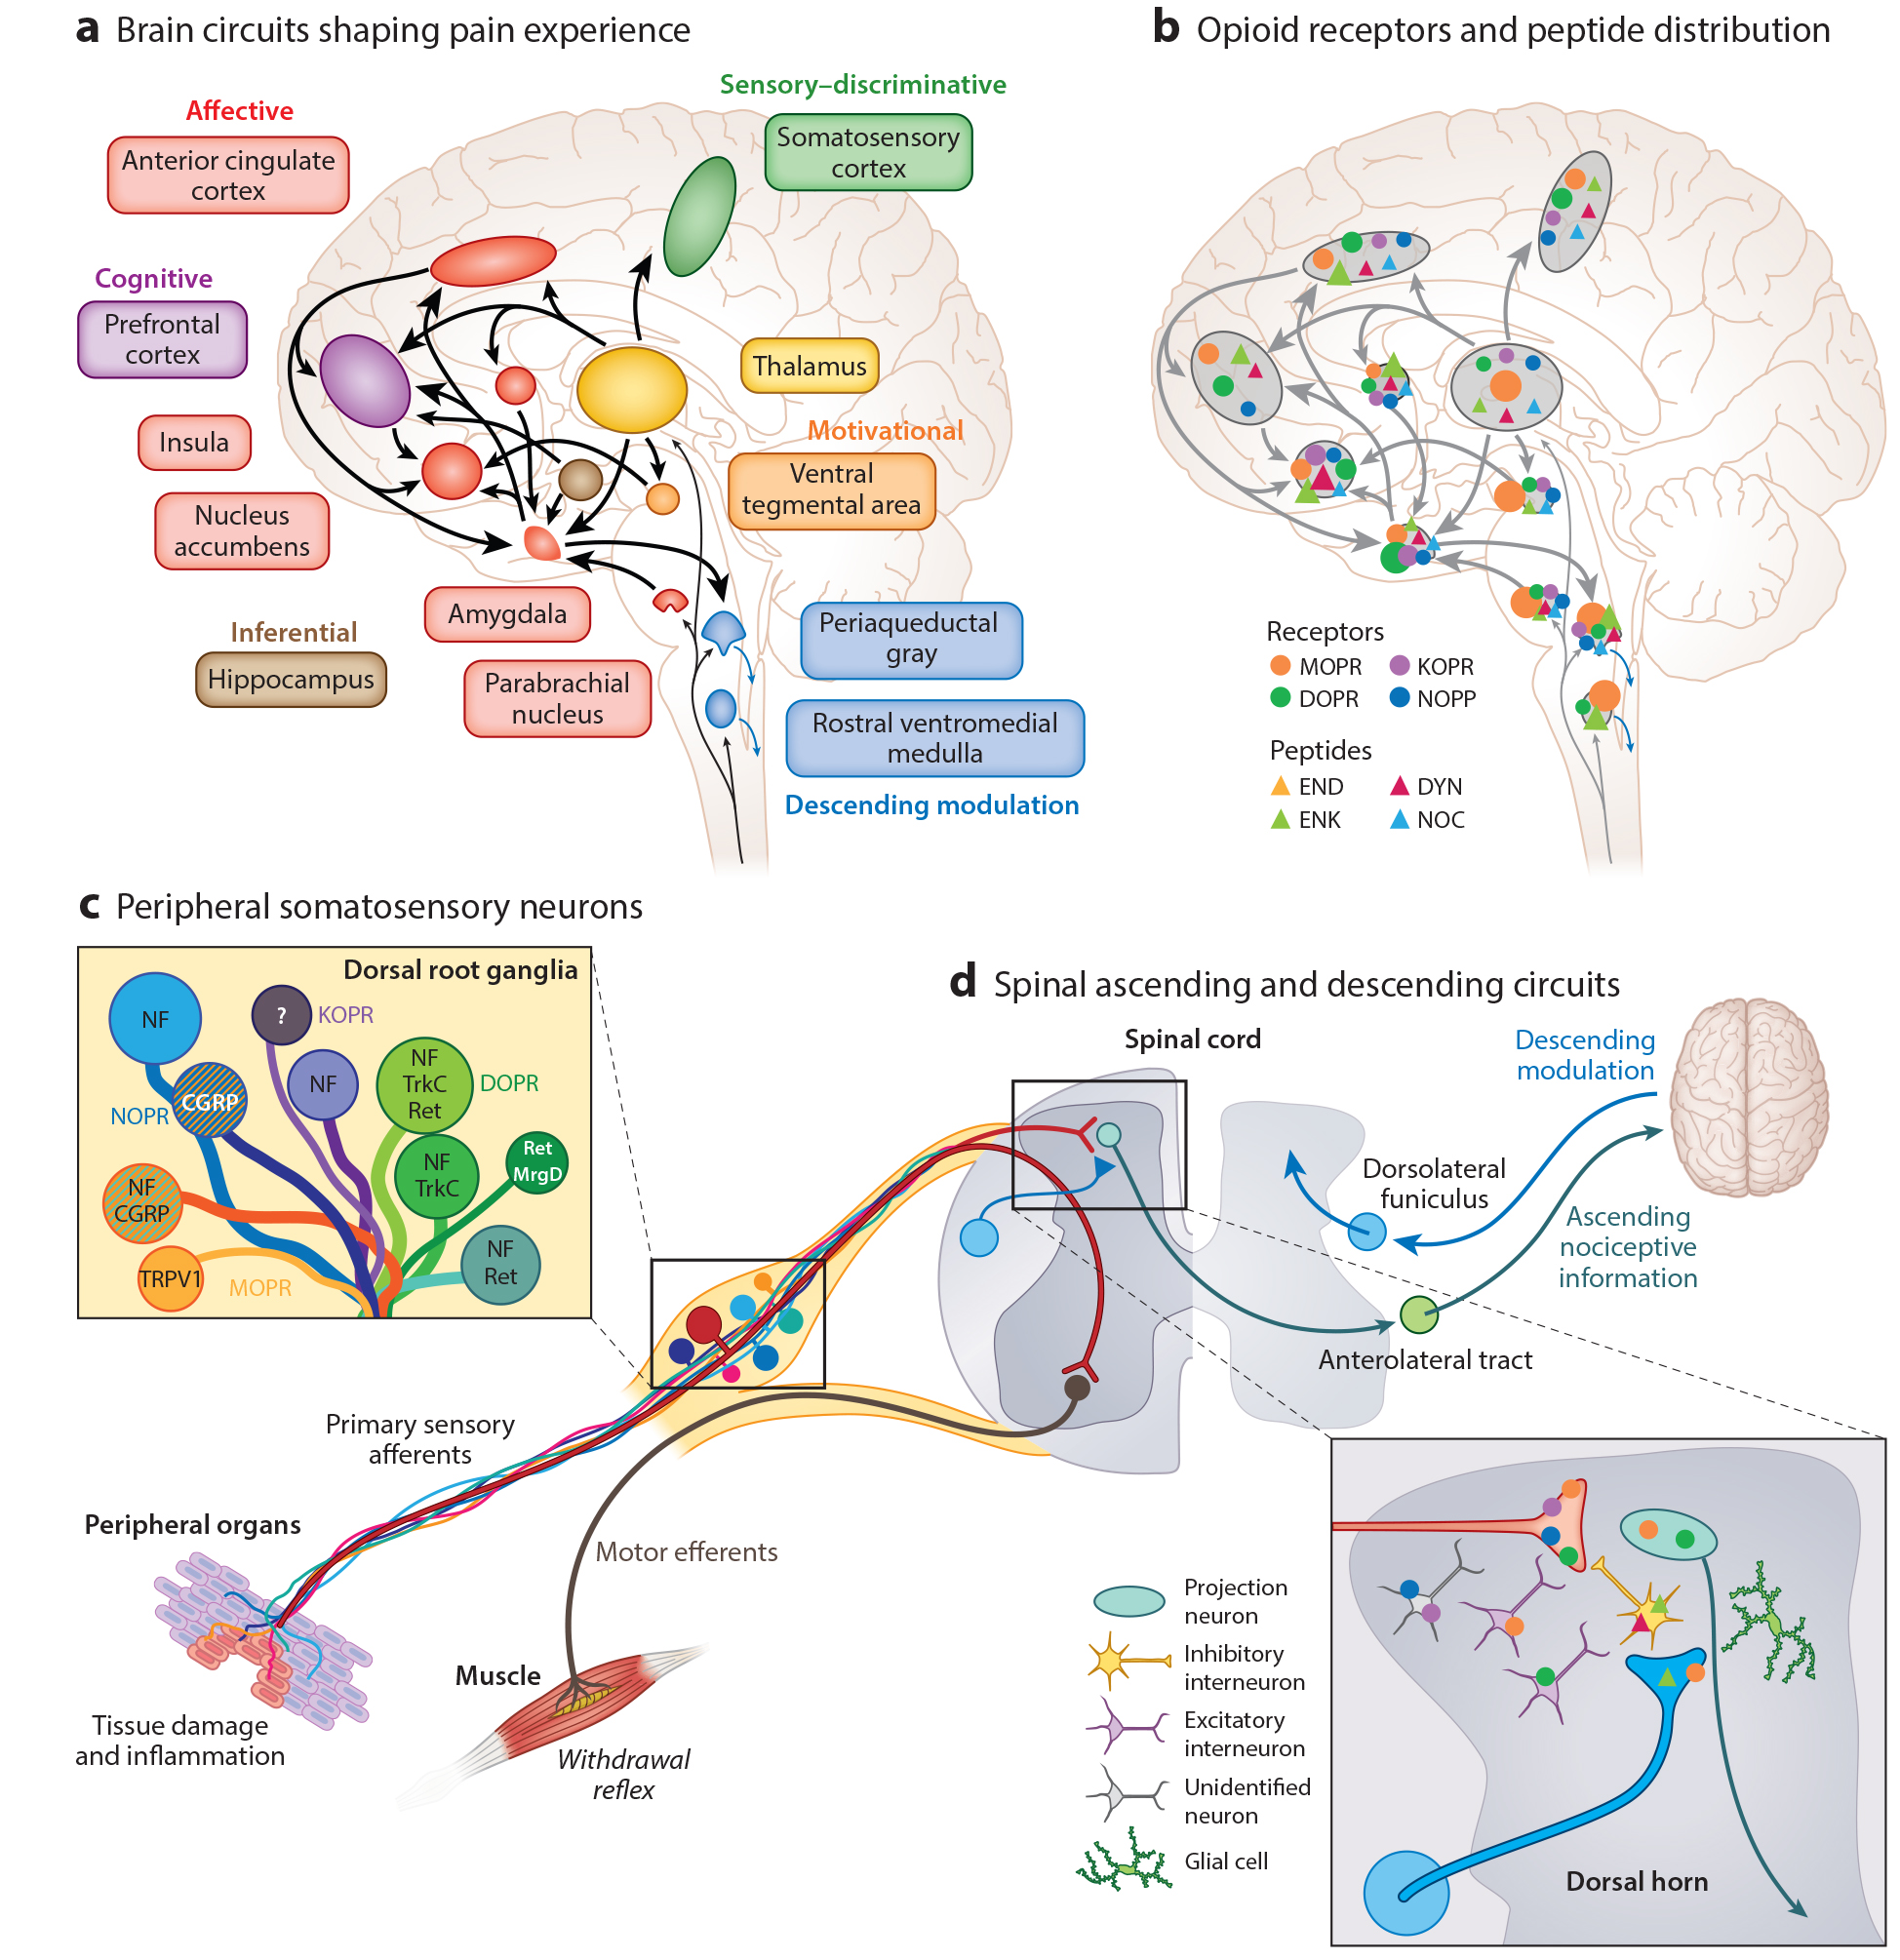 Endogenous and exogenous opioids in pain     Corder, Castro, Bruchas, Scherrer. Annual Review of Neuroscience. July 2018    Opioids are the most commonly used and effective analgesic treatments for severe pain, but they have recently come under scrutiny owing to epidemic levels of abuse and overdose. These compounds act on the endogenous opioid system, which comprises four G protein–coupled receptors (mu, delta, kappa, and nociceptin) and four major peptide families (β-endorphin, enkephalins, dynorphins, and nociceptin/orphanin FQ). In this review, we first describe the functional organization and pharmacology of the endogenous opioid system.We then summarize current knowledge on the signaling mechanisms by which opioids regulate neuronal function and neurotransmission. Finally, we discuss the loci of opioid analgesic action along peripheral and central pain pathways, emphasizing the pain-relieving properties of opioids against the affective dimension of the pain experience.